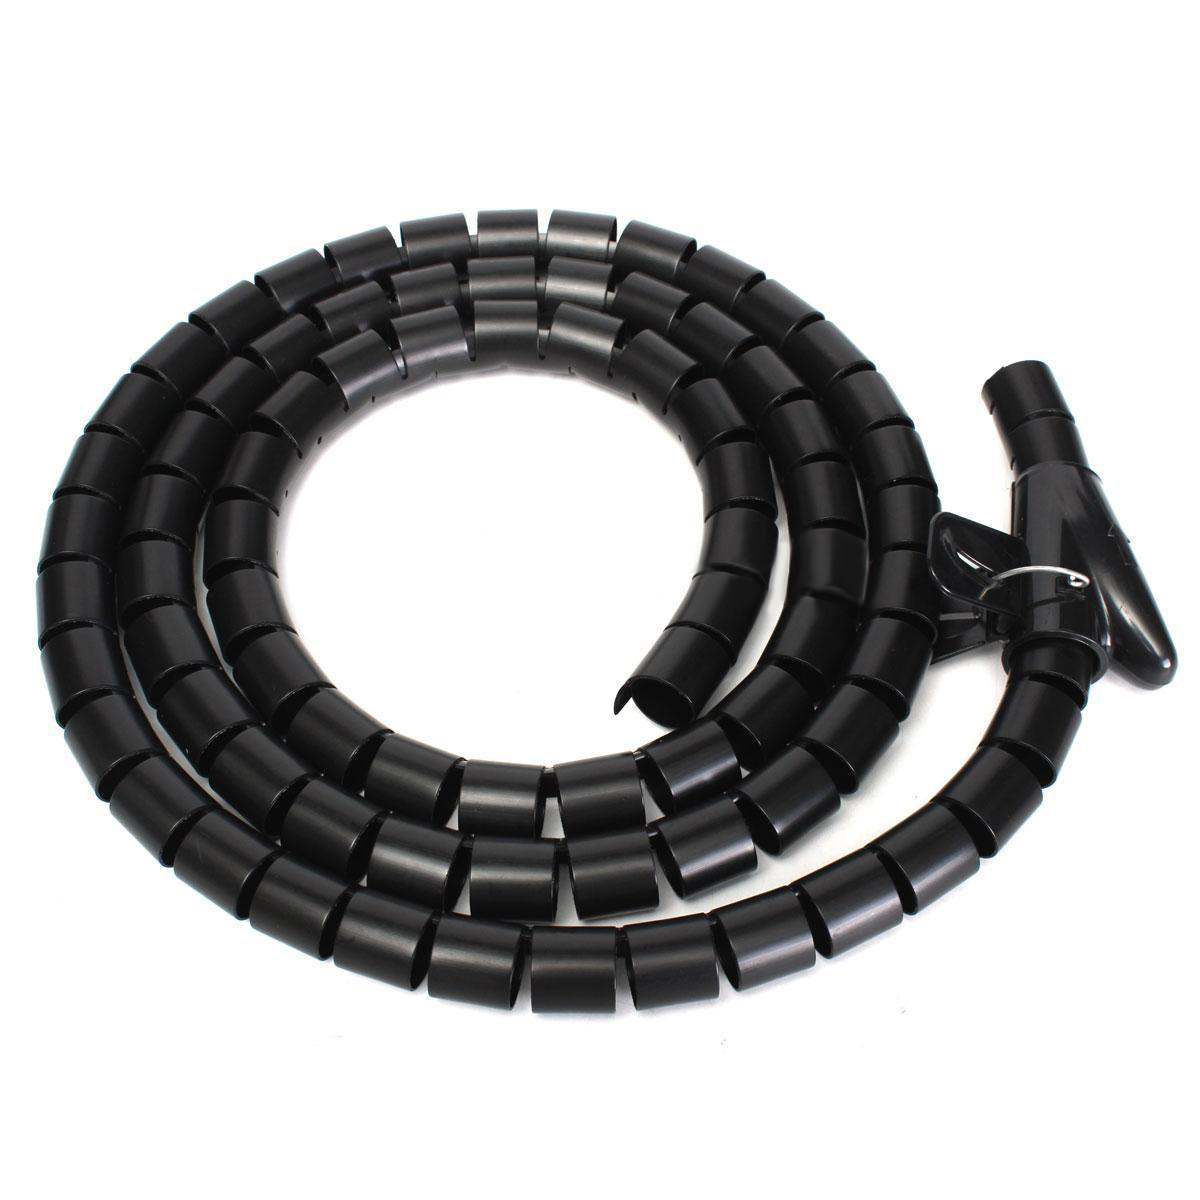 1pc 25mm Cable Spiral Wrap Tool Black Spiral Wrapping Band Tidy Cord Wire Banding Loom Storage Organizer 6m 20ft long 12mm wire spiral wrap wrapping sleeving band cable black white x 2